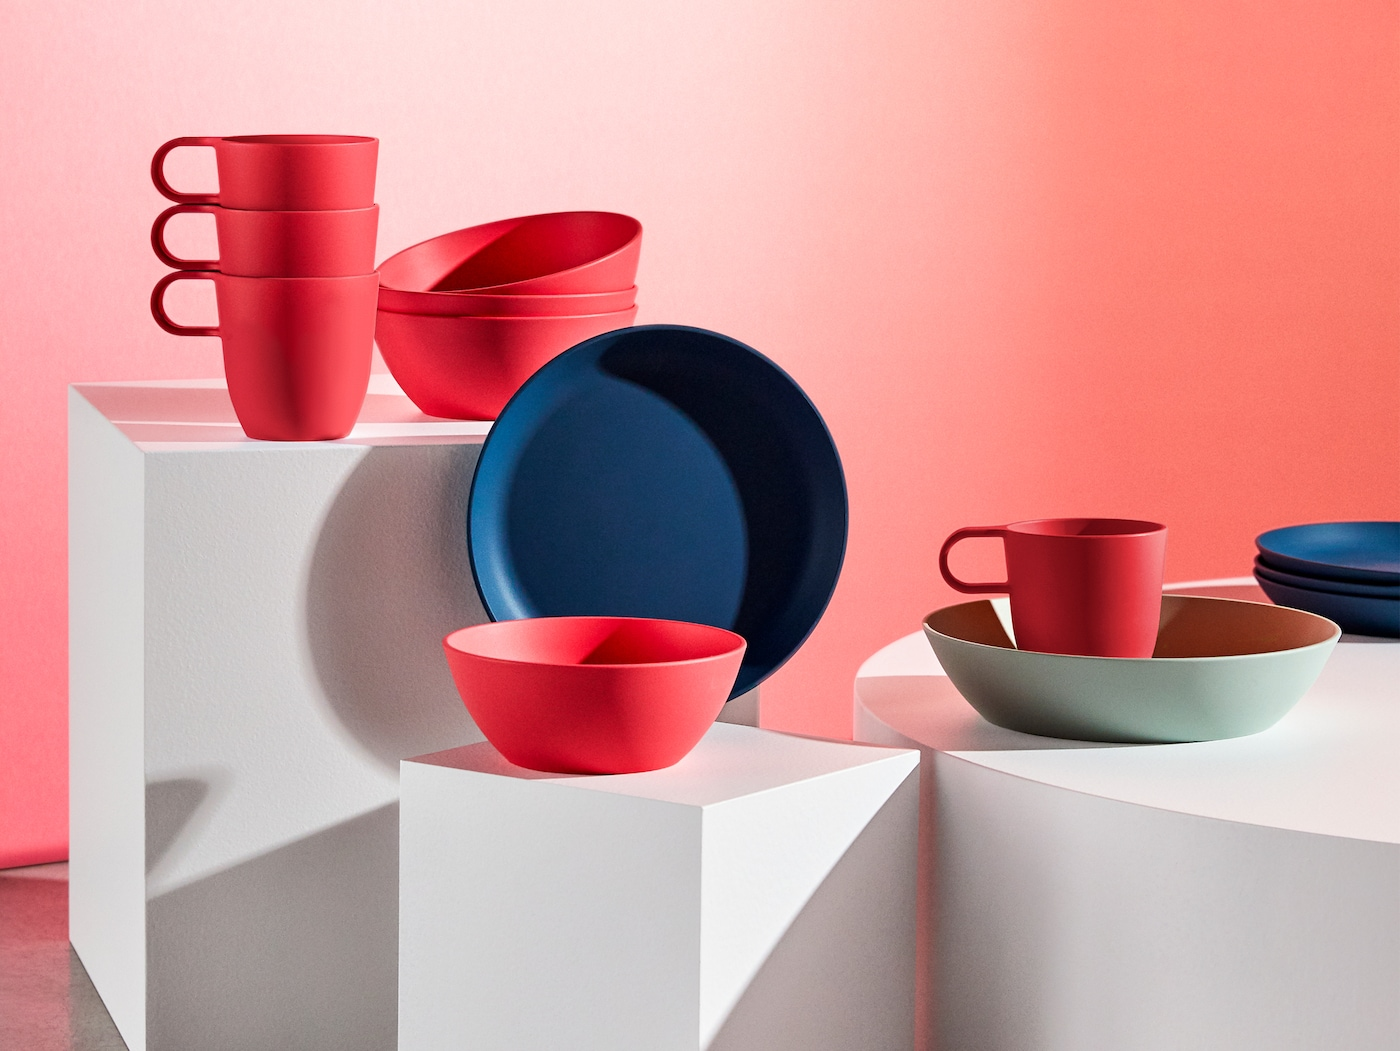 A selection of TALRIKA mugs, bowls and plates in bright red, light green and dark blue.